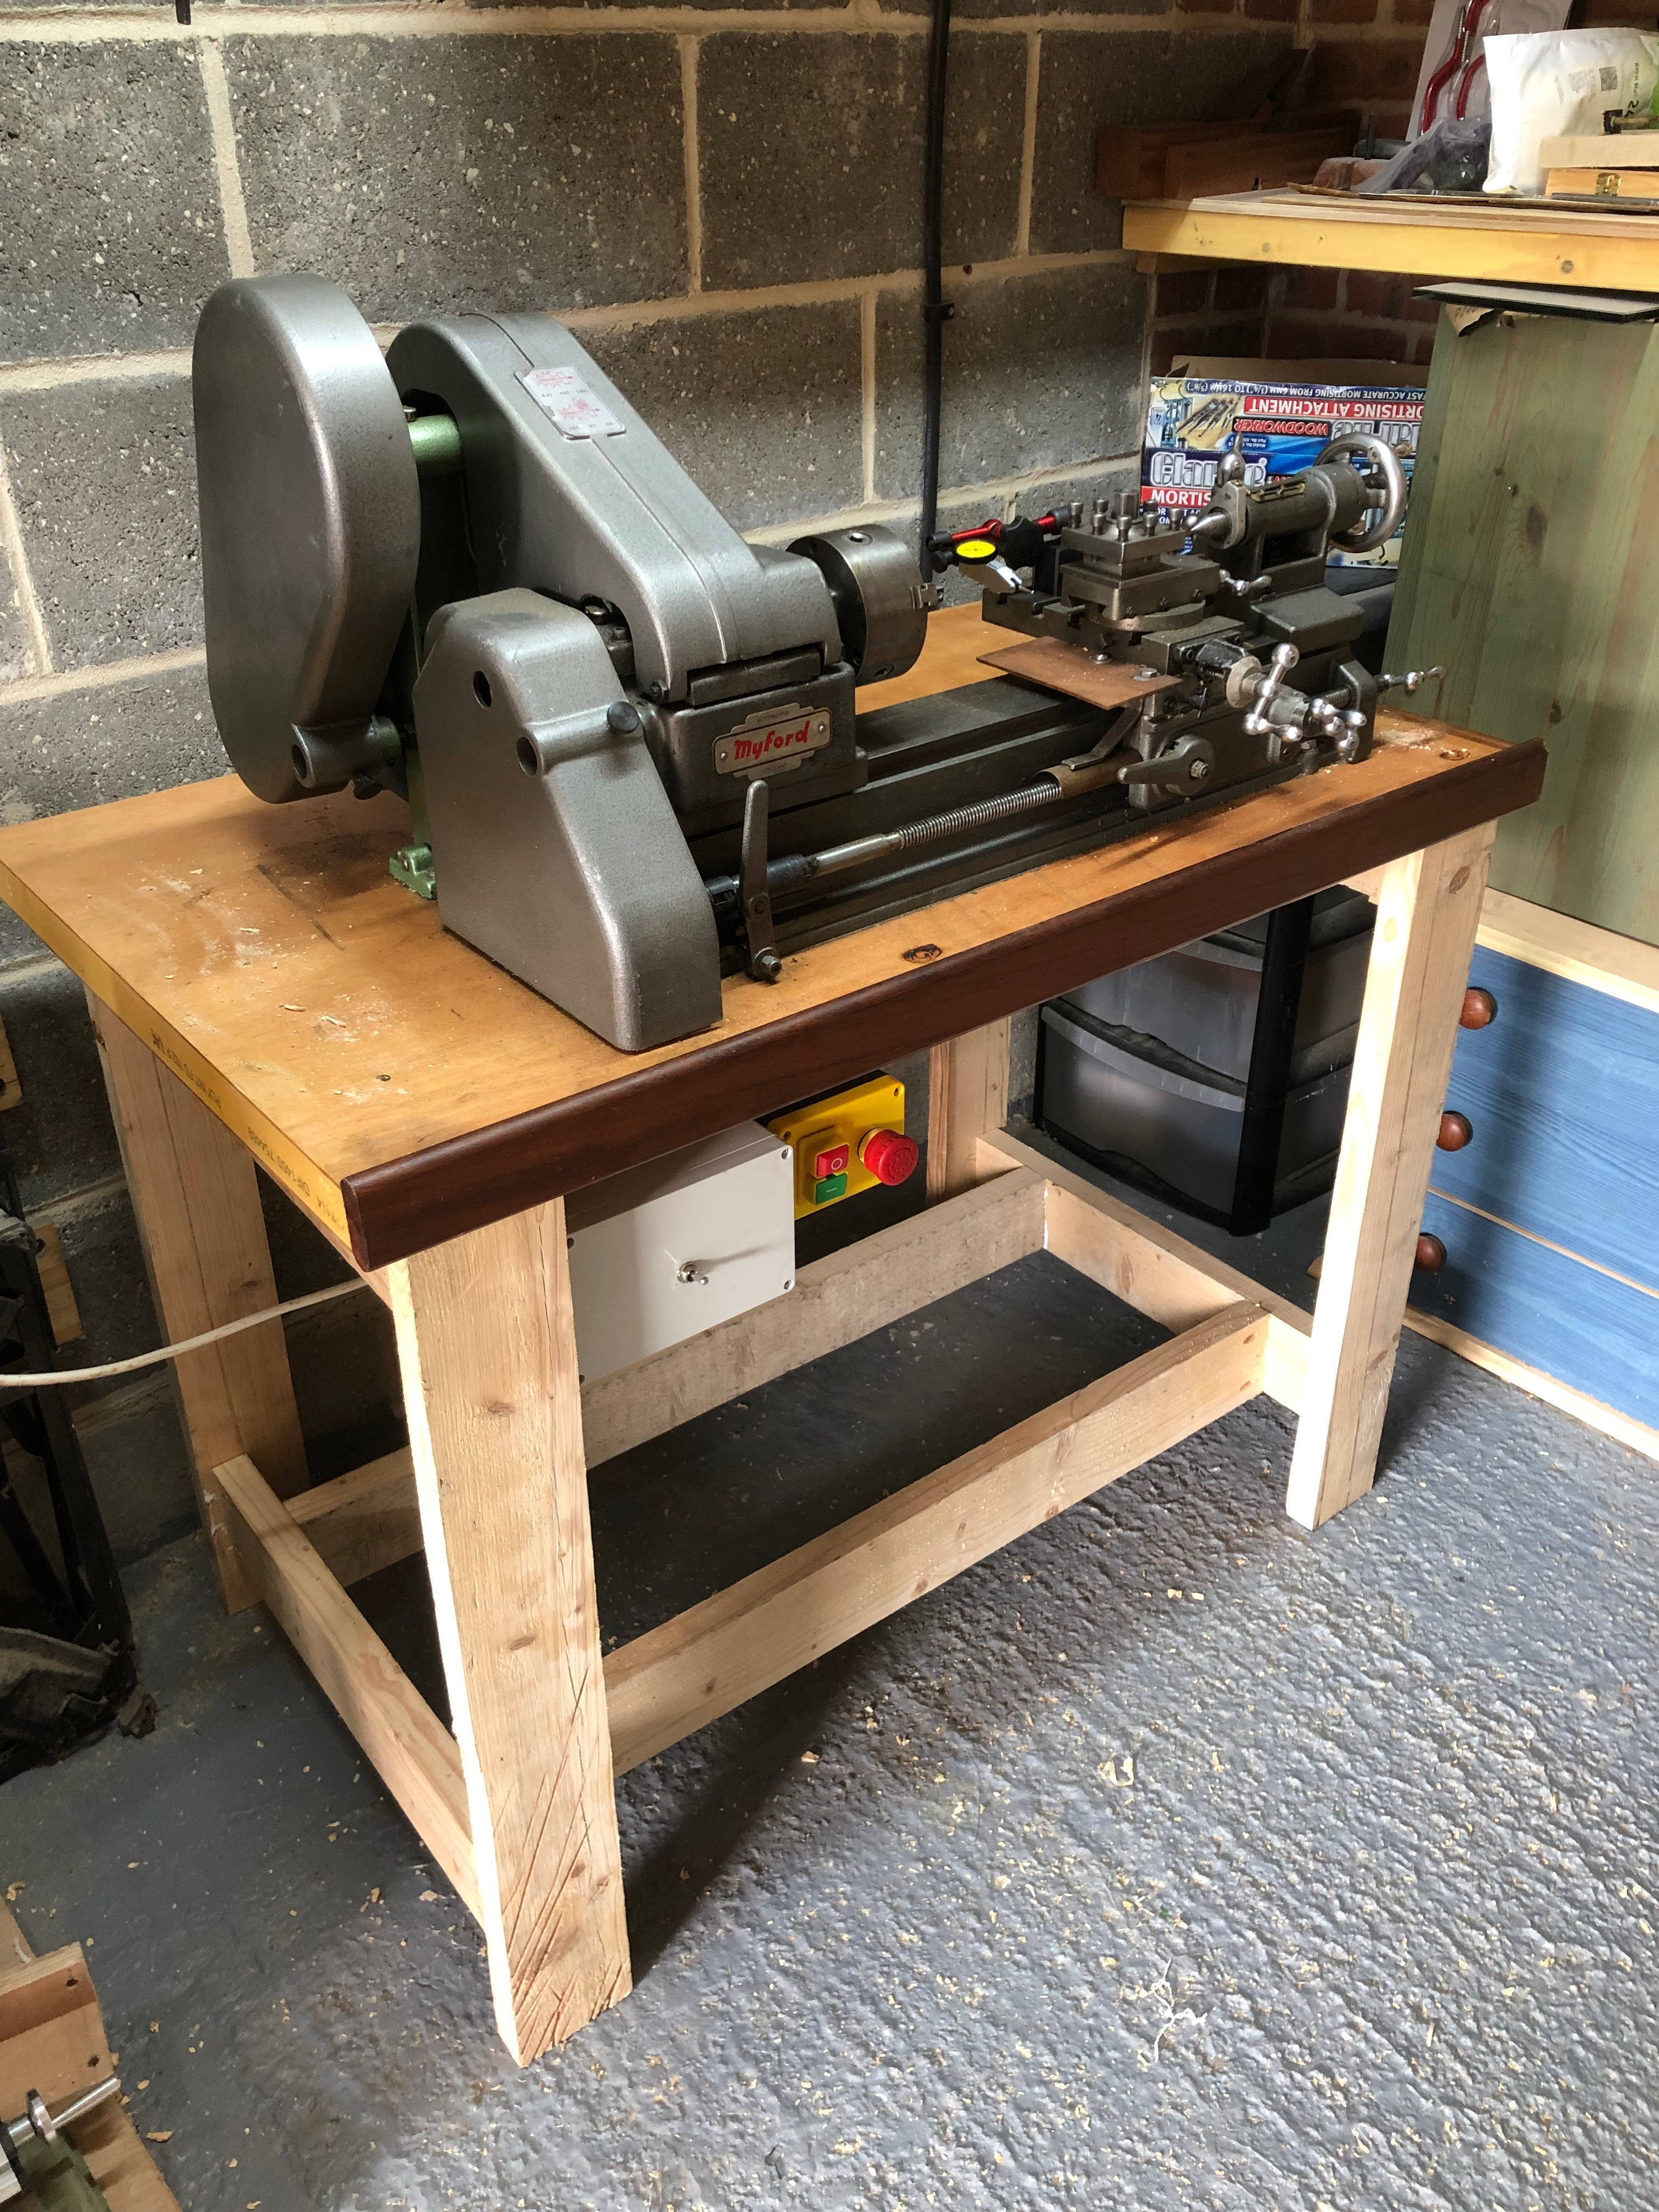 Wiring Up a Brooke Crompton Single-phase Lathe Motor (Myford Lathe)